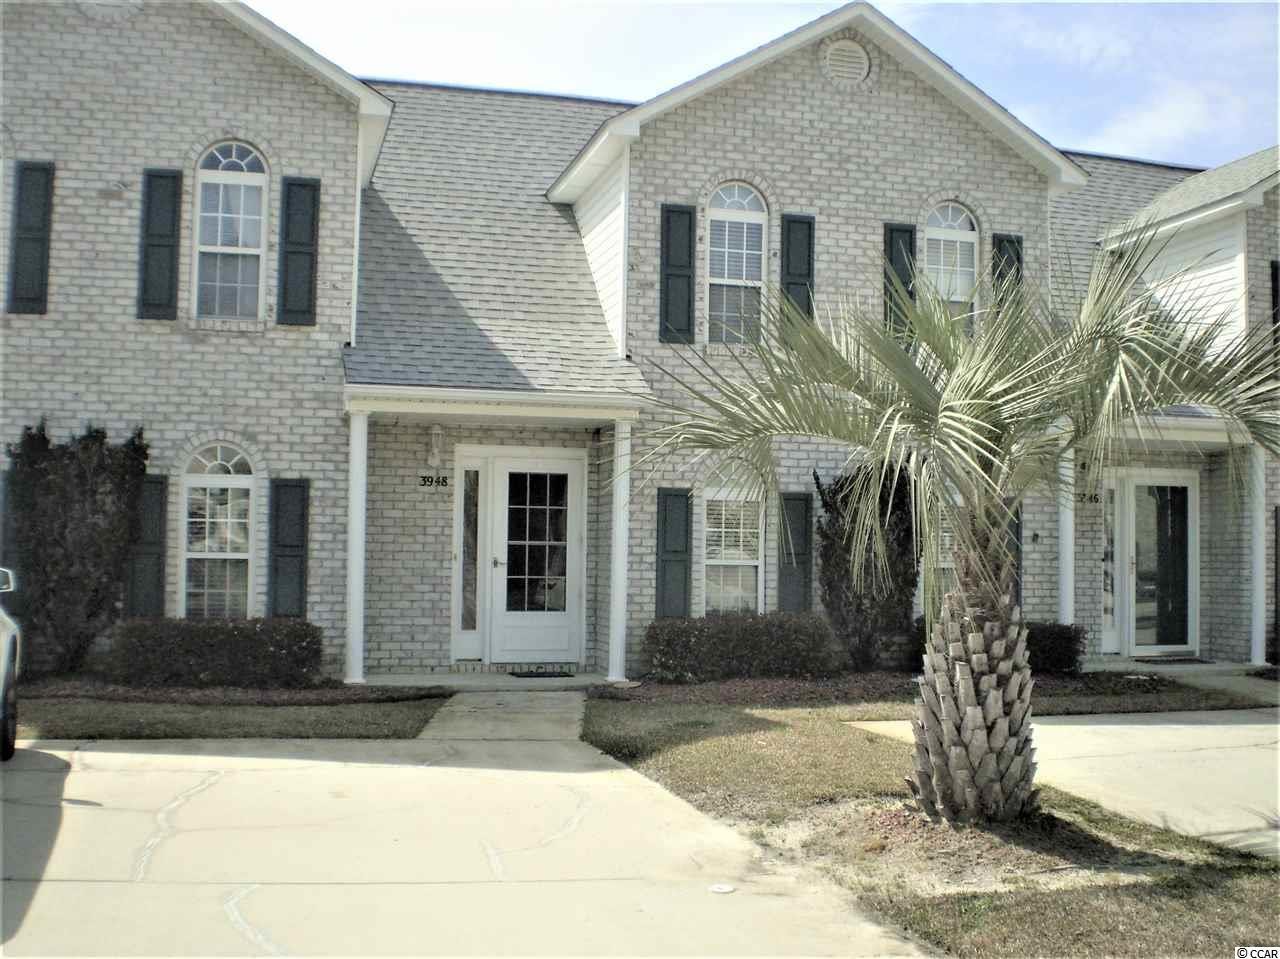 "This well kept Townhouse is conveniently located near all the amenities of Little River and just a few short miles to the ocean. Hardwood floors add beauty to the open concept of the Living/Dining area. The front windows have hurricane film installed for additional safety. Don't let the fact that this is only a 2 bedroom unit defer you. Upstairs area was designed for easy completion to make this a 3 bedroom unit, however the space makes great place for extra storage. Imagine yourself lounging by the pool on warm sunny days. This home also offers a screened in porch as well as a patio for outside entertaining. All kitchen appliances as well as washer and dryer convey with the home. Property is being sold ""As-IS""."